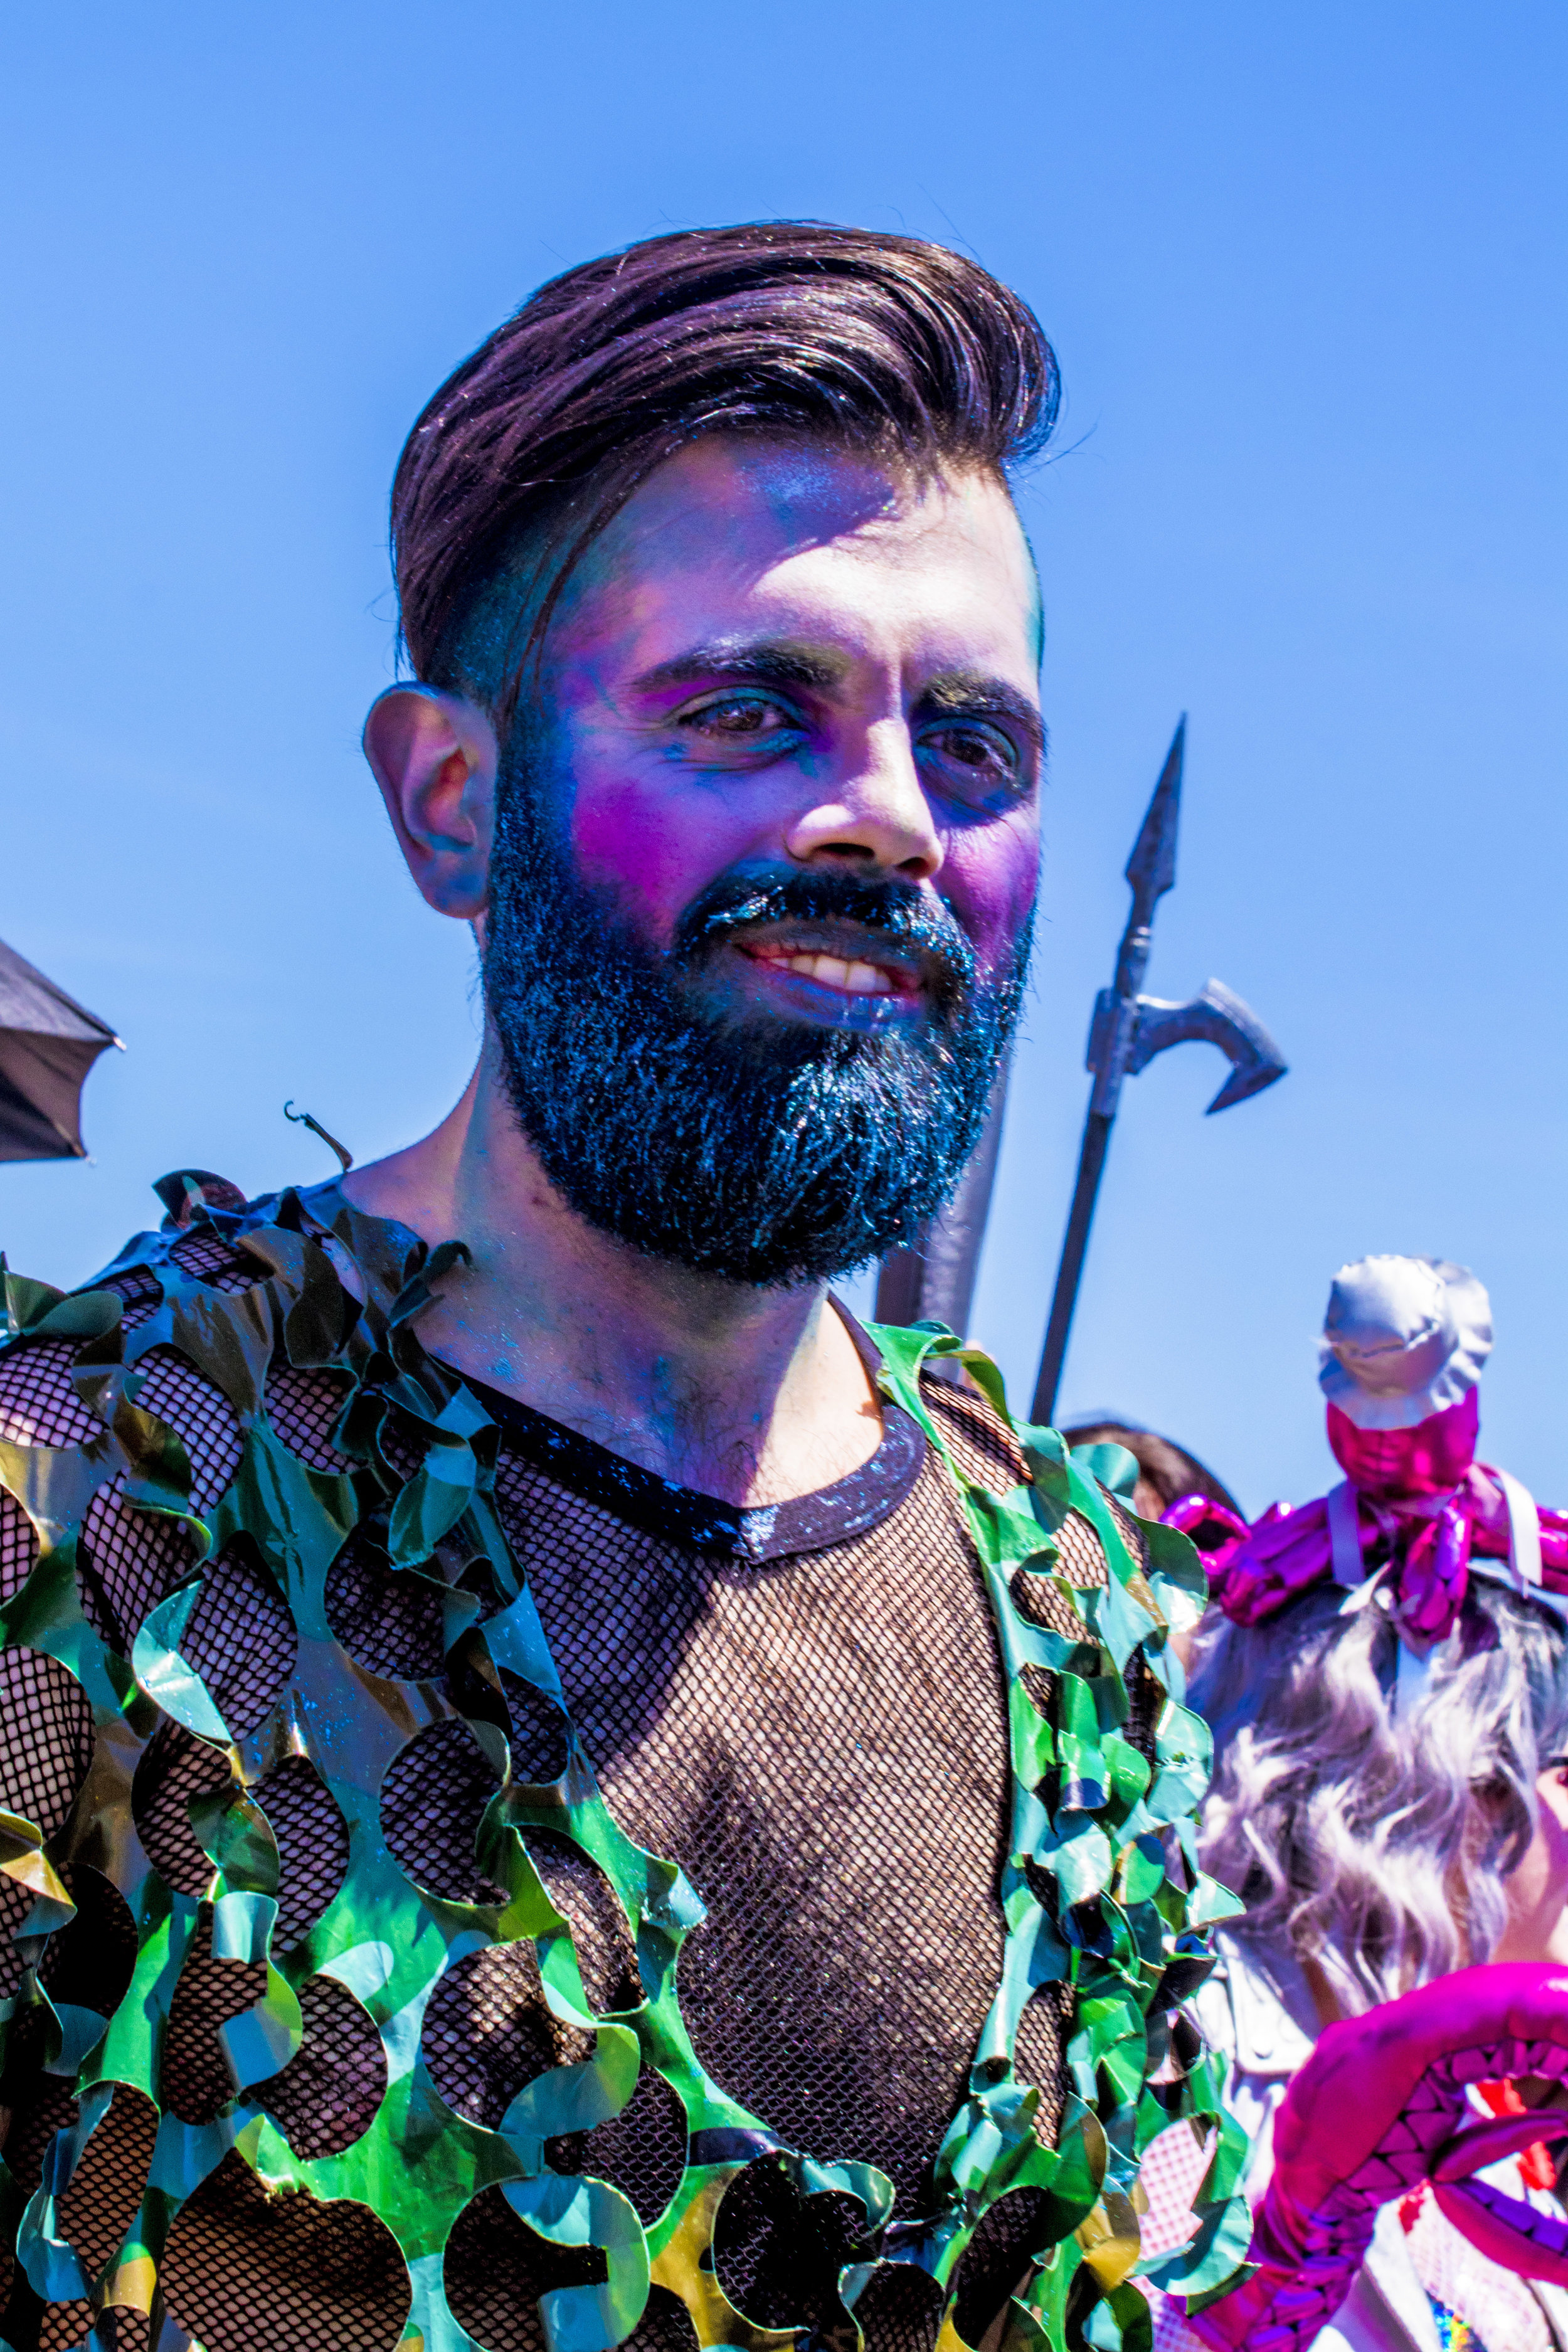 MermaidParade2018-20.jpg